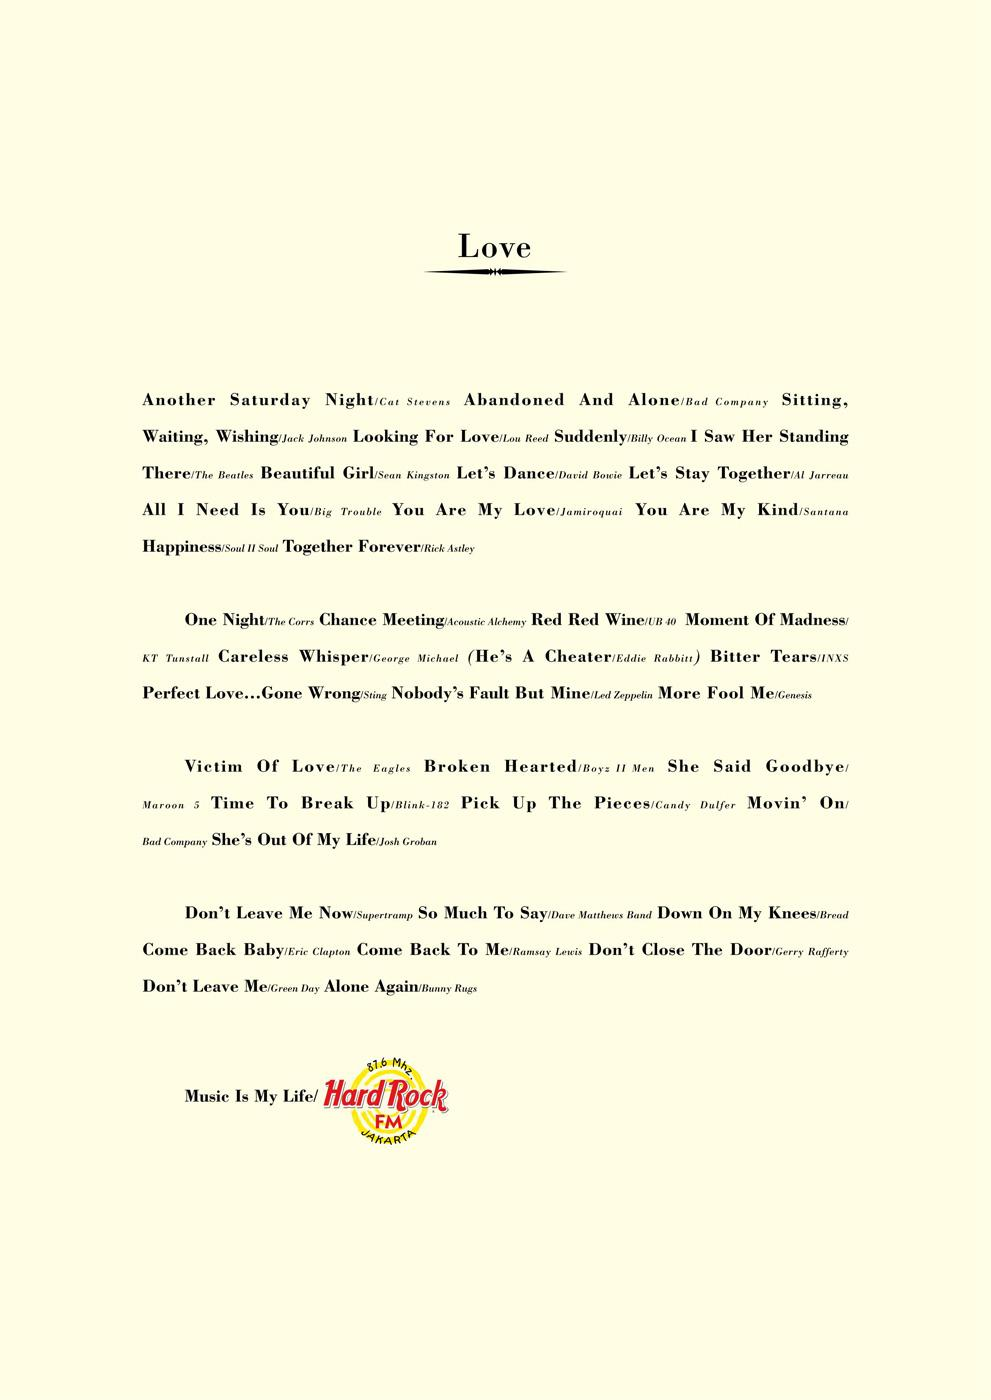 Hard Rock FM Print Ad -  Love